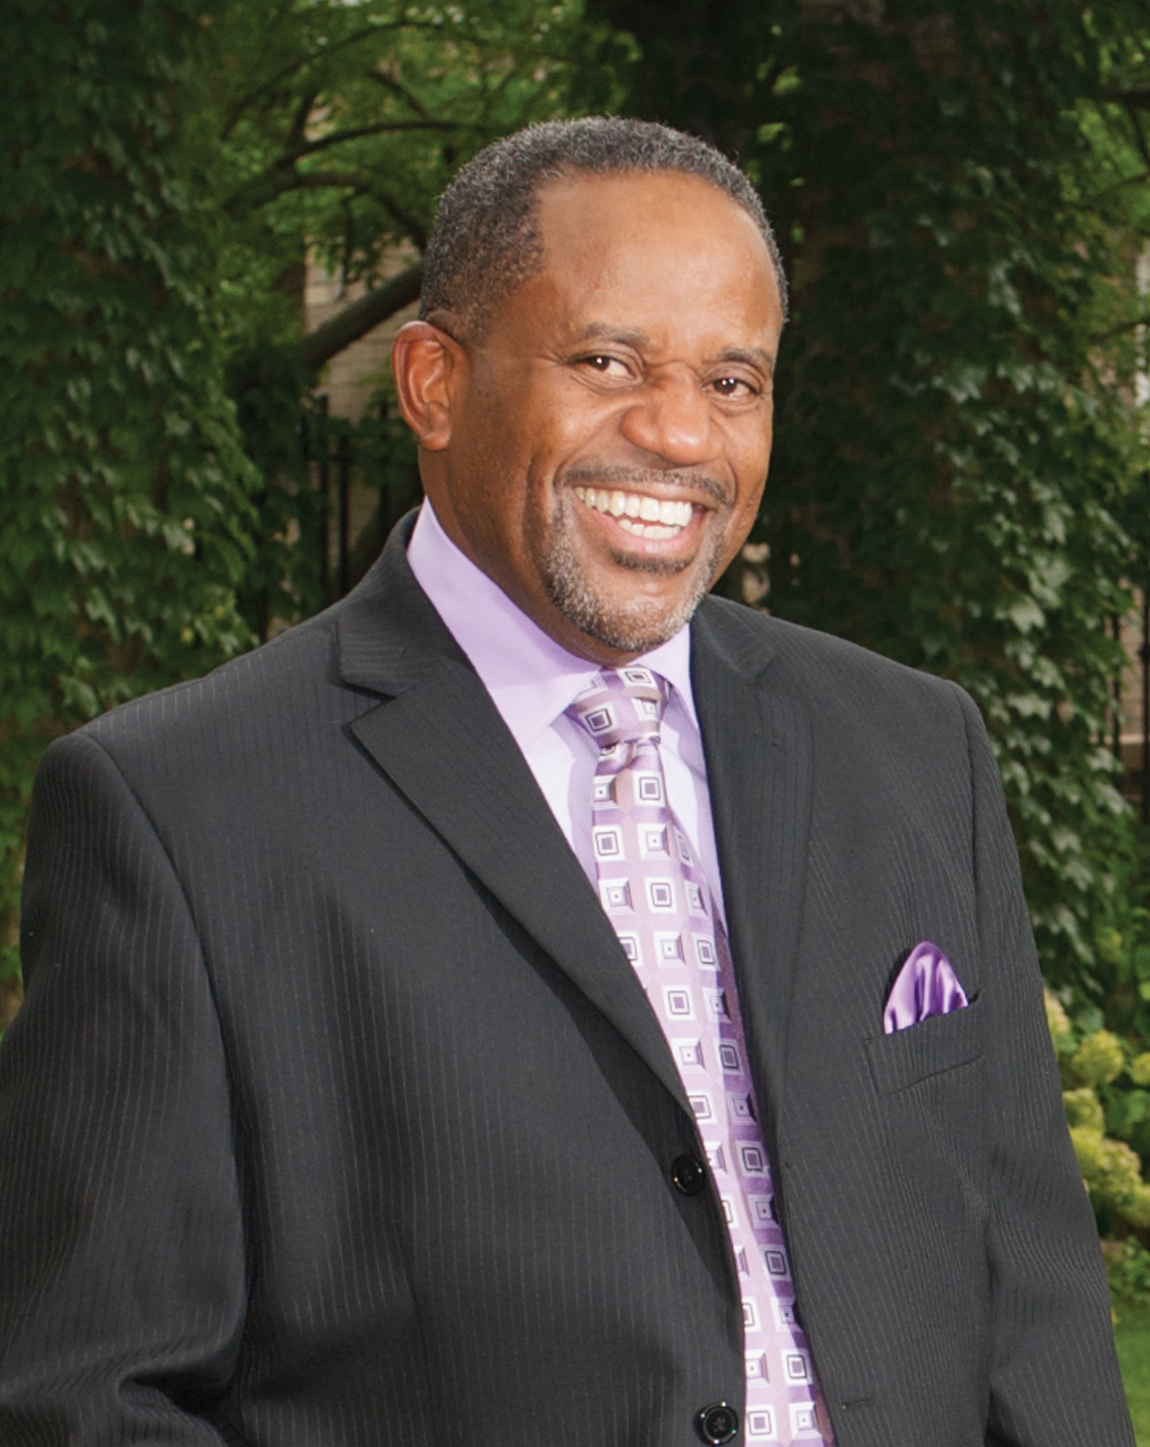 Zeke Morris is the president of the Chicago Association of Realtors.